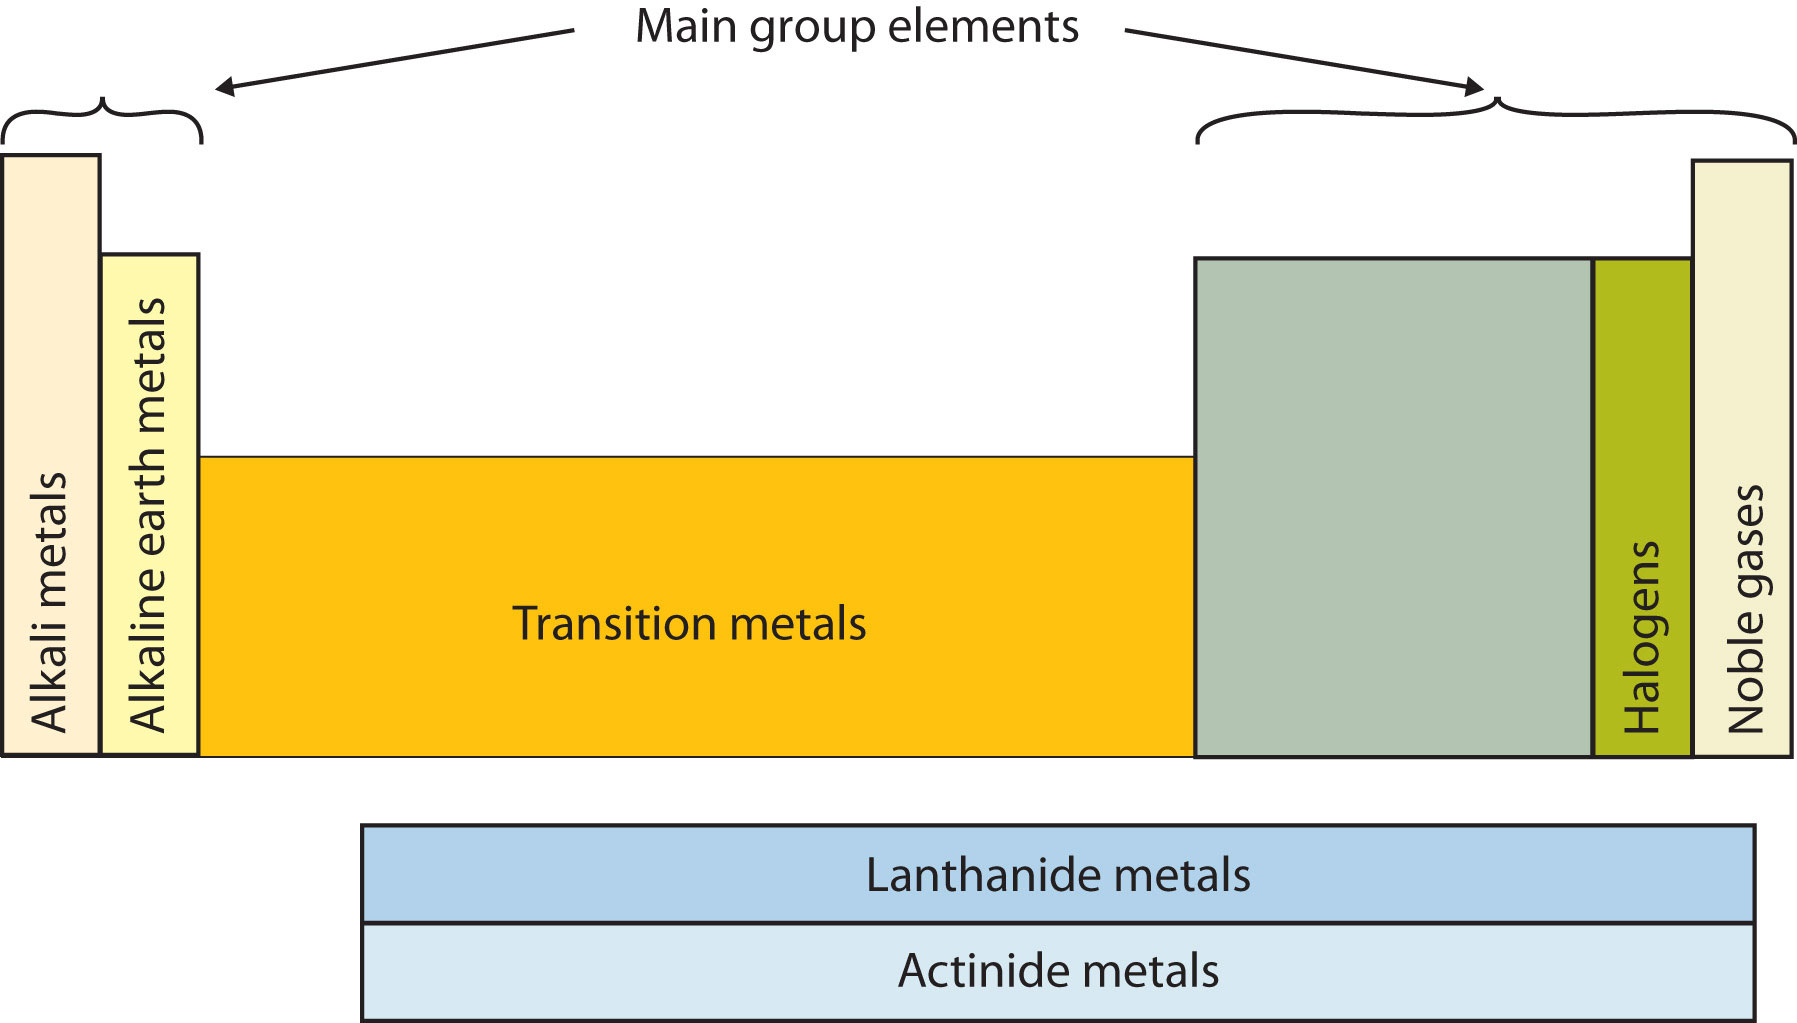 New periodic table lanthanide metals periodic metals lanthanide table periodic have some of the special sections table elements names gamestrikefo Choice Image